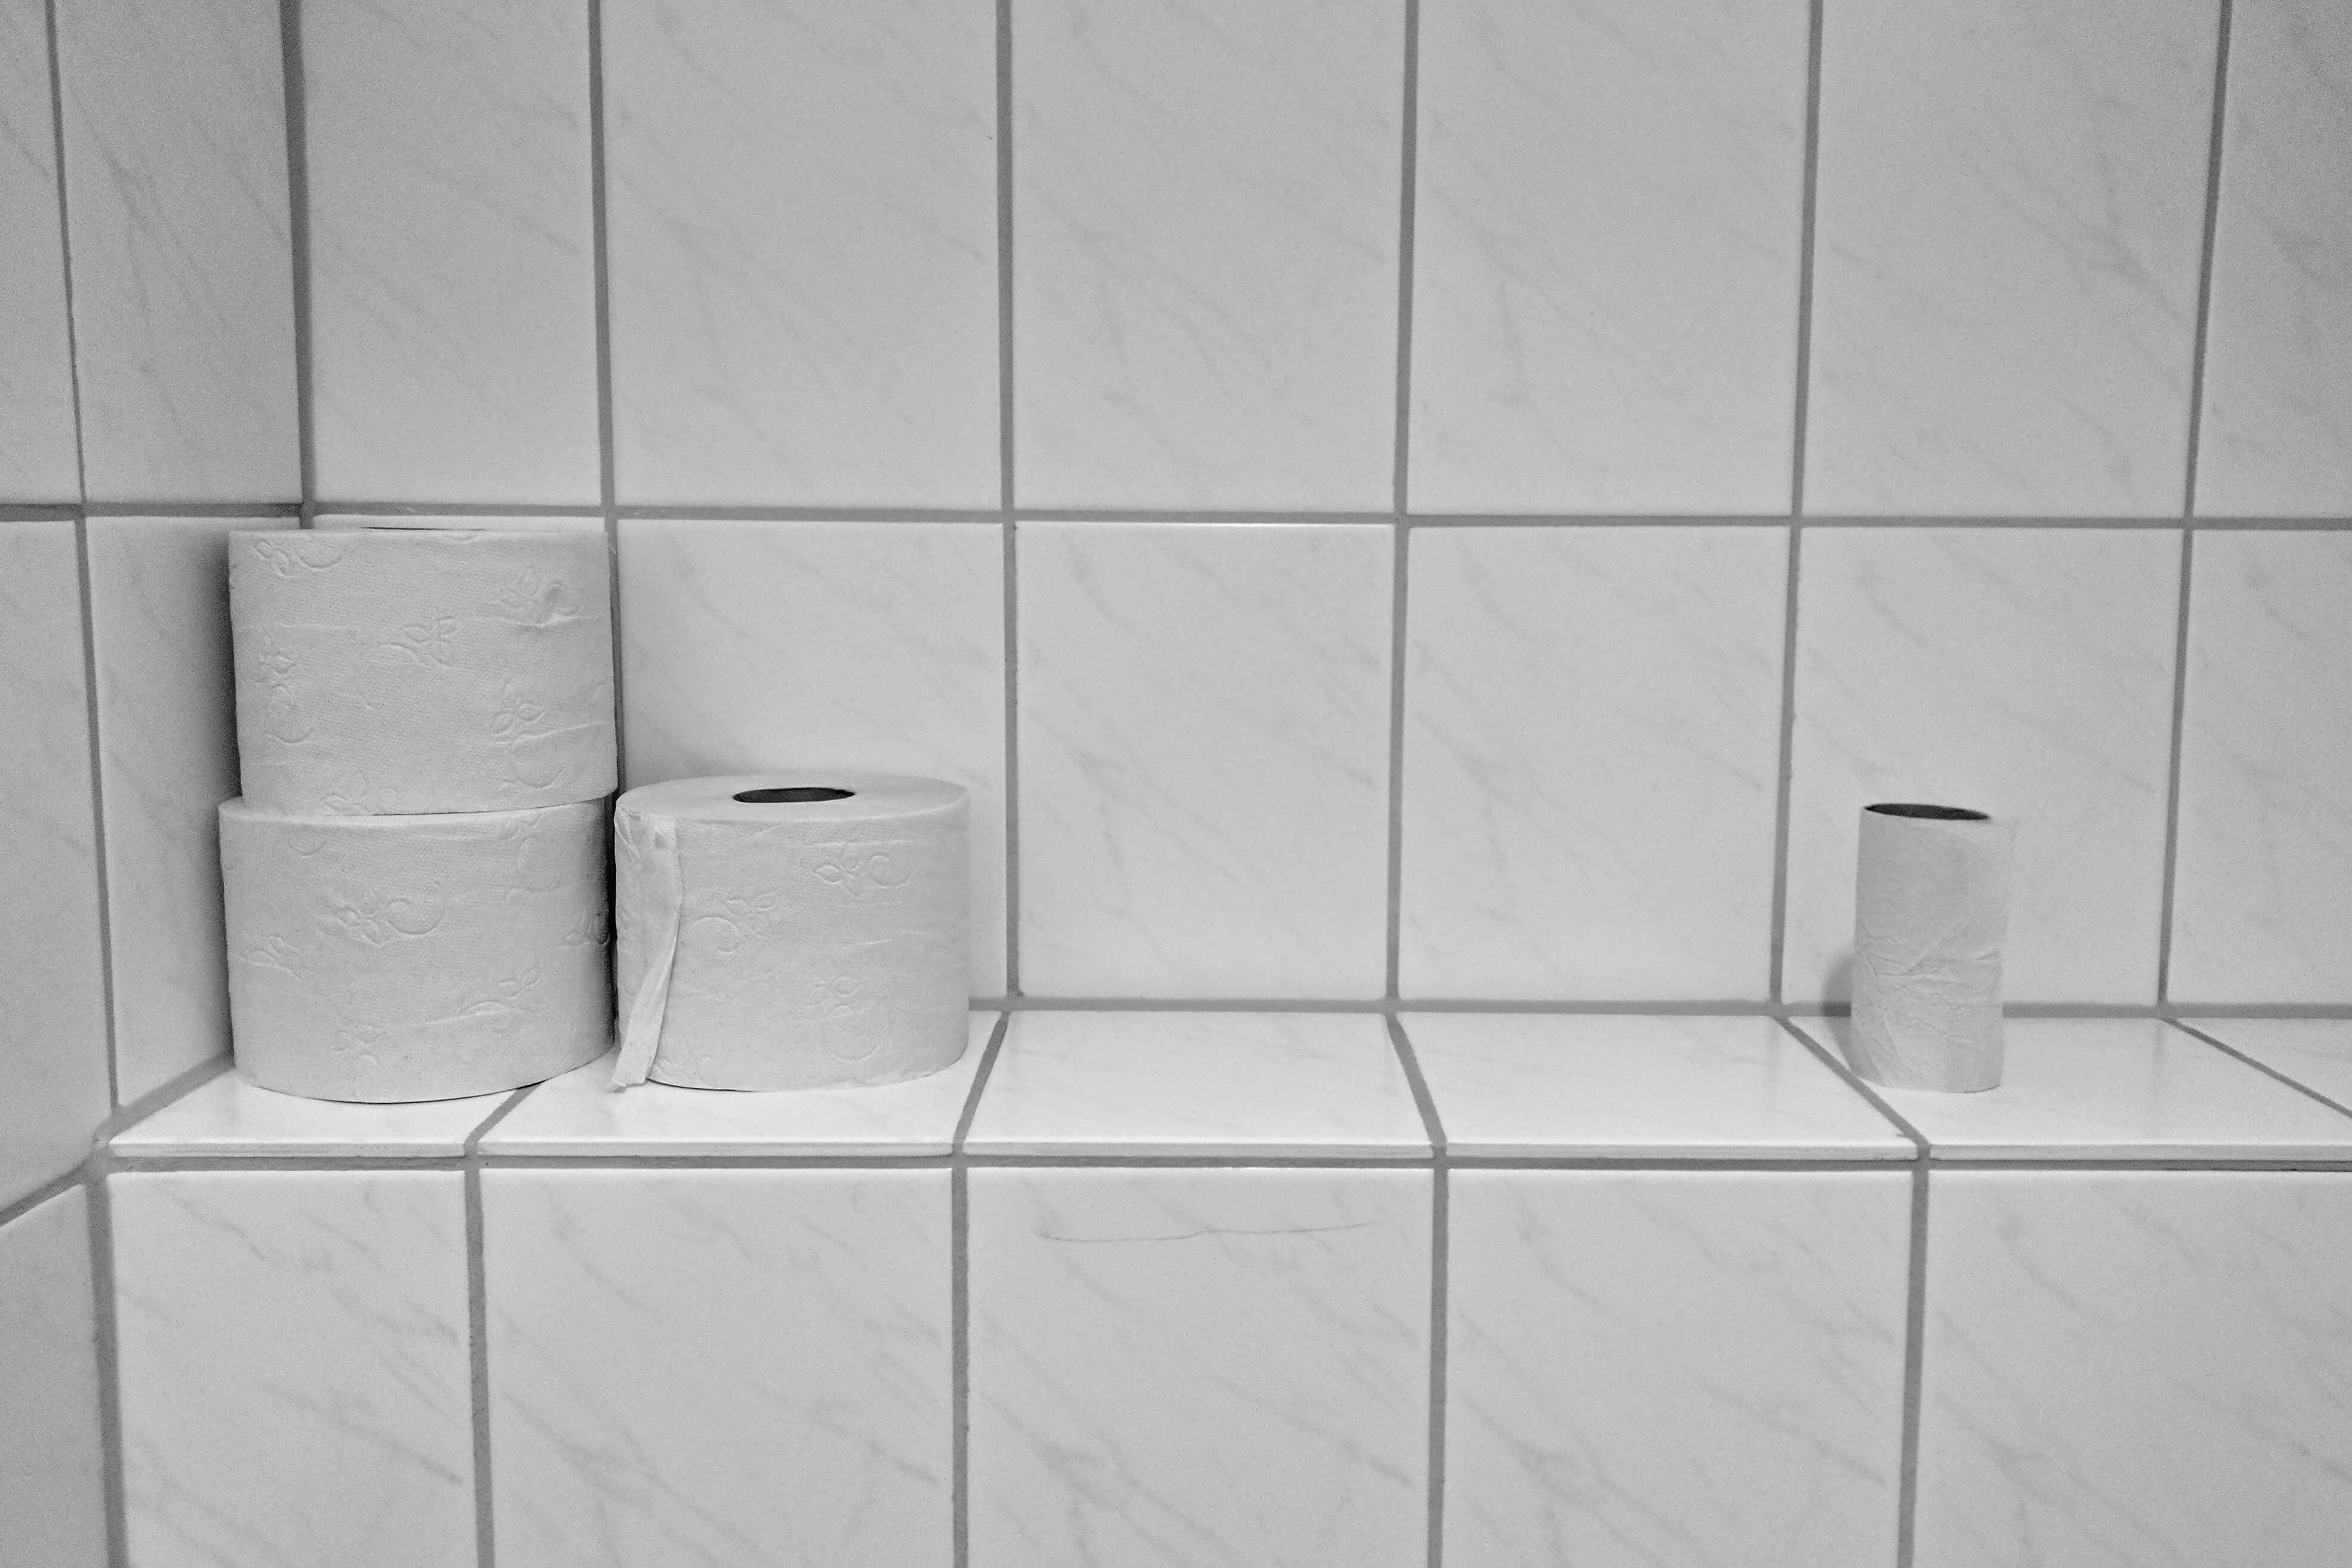 Choosing a caroma cistern replacement